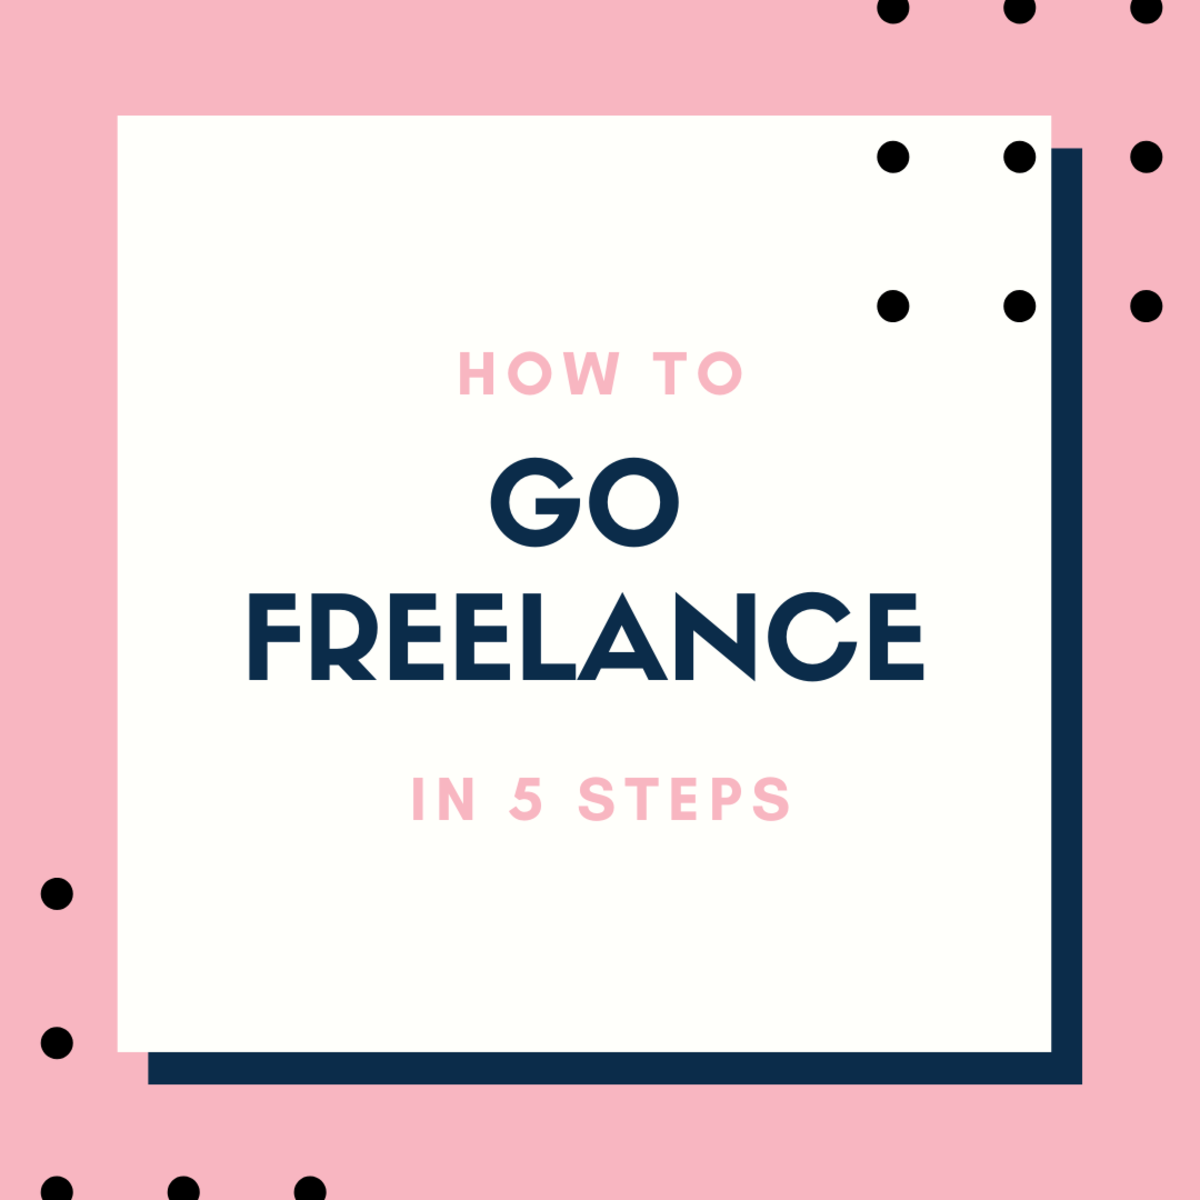 From Food Stamps to Freelance: 5 Big Steps to Going Freelance